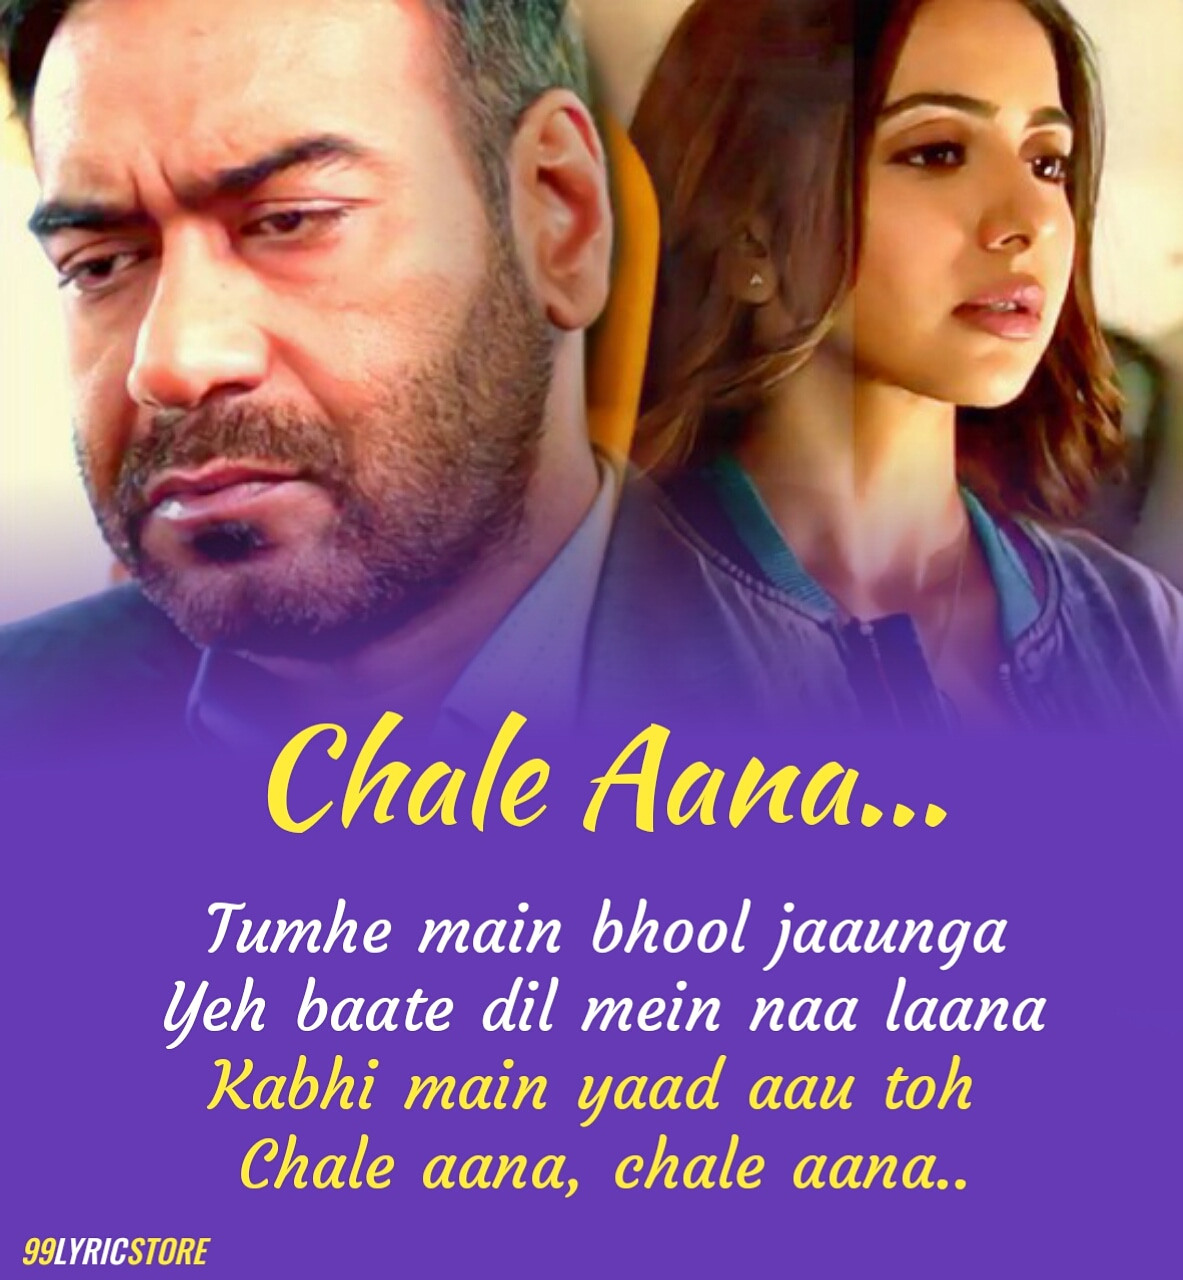 Chale Aana Sad Hindi Song Lyrics From Movie De De Pyaar De Sung by Armaan Malik